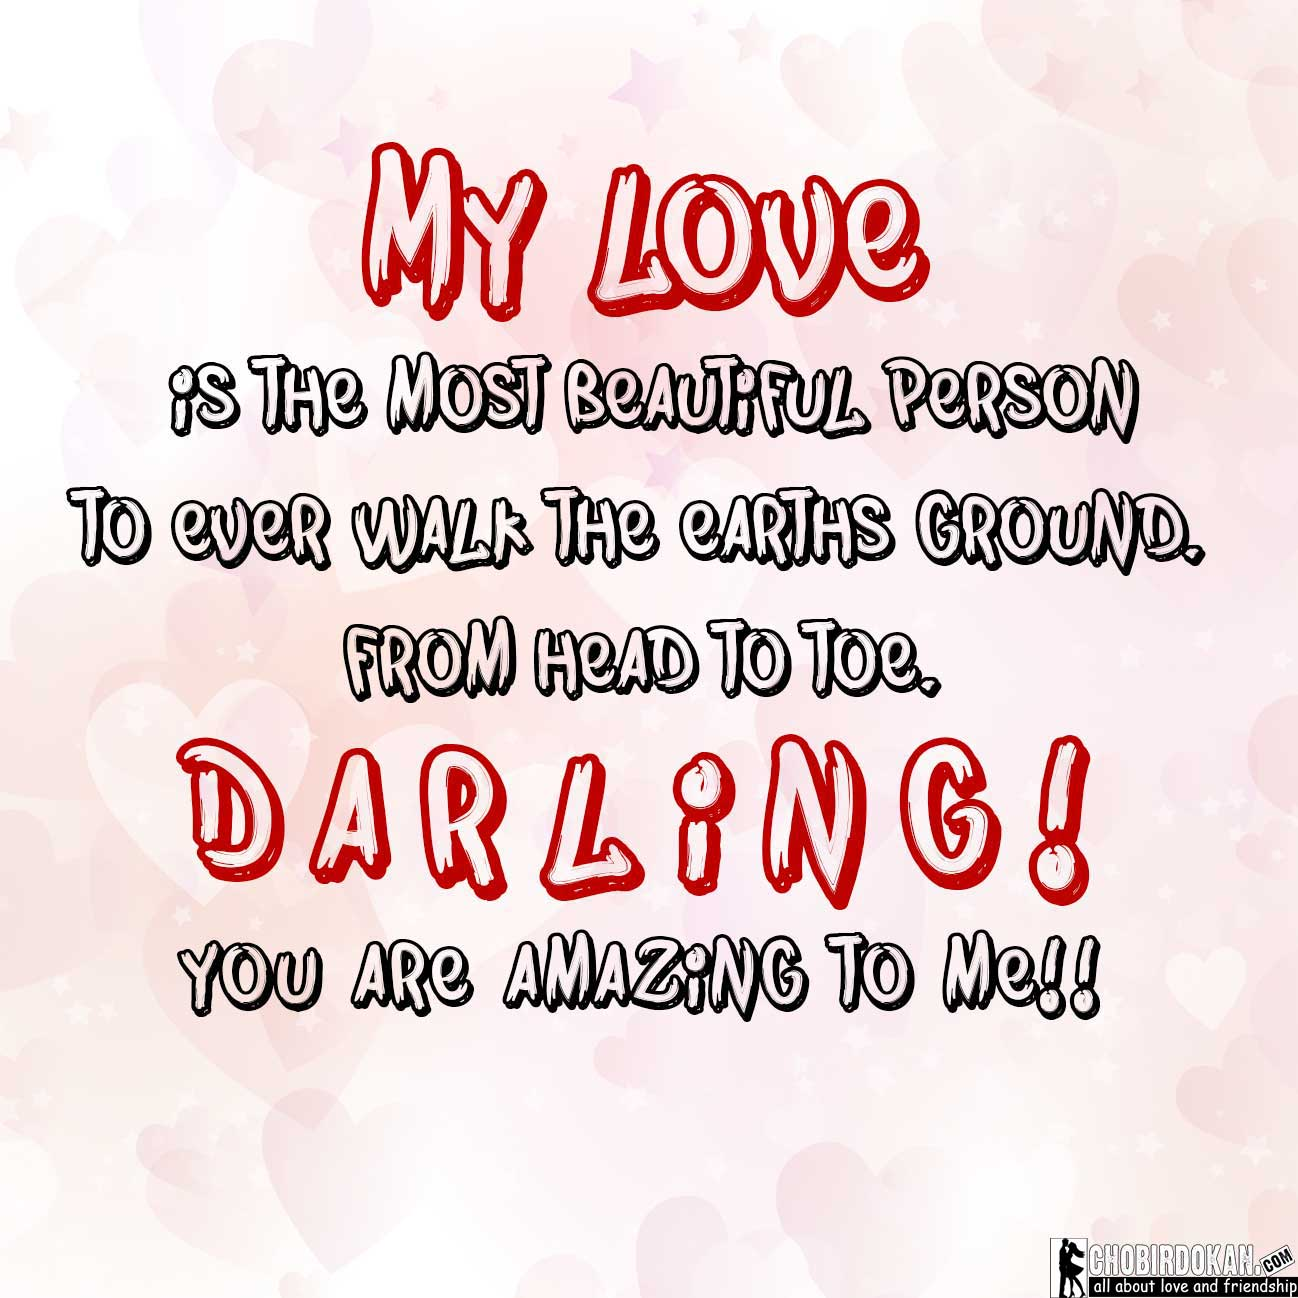 Amazing Quotes And Sayings You Are Amazing Quotes For Him And Her With Images Chobir Dokan